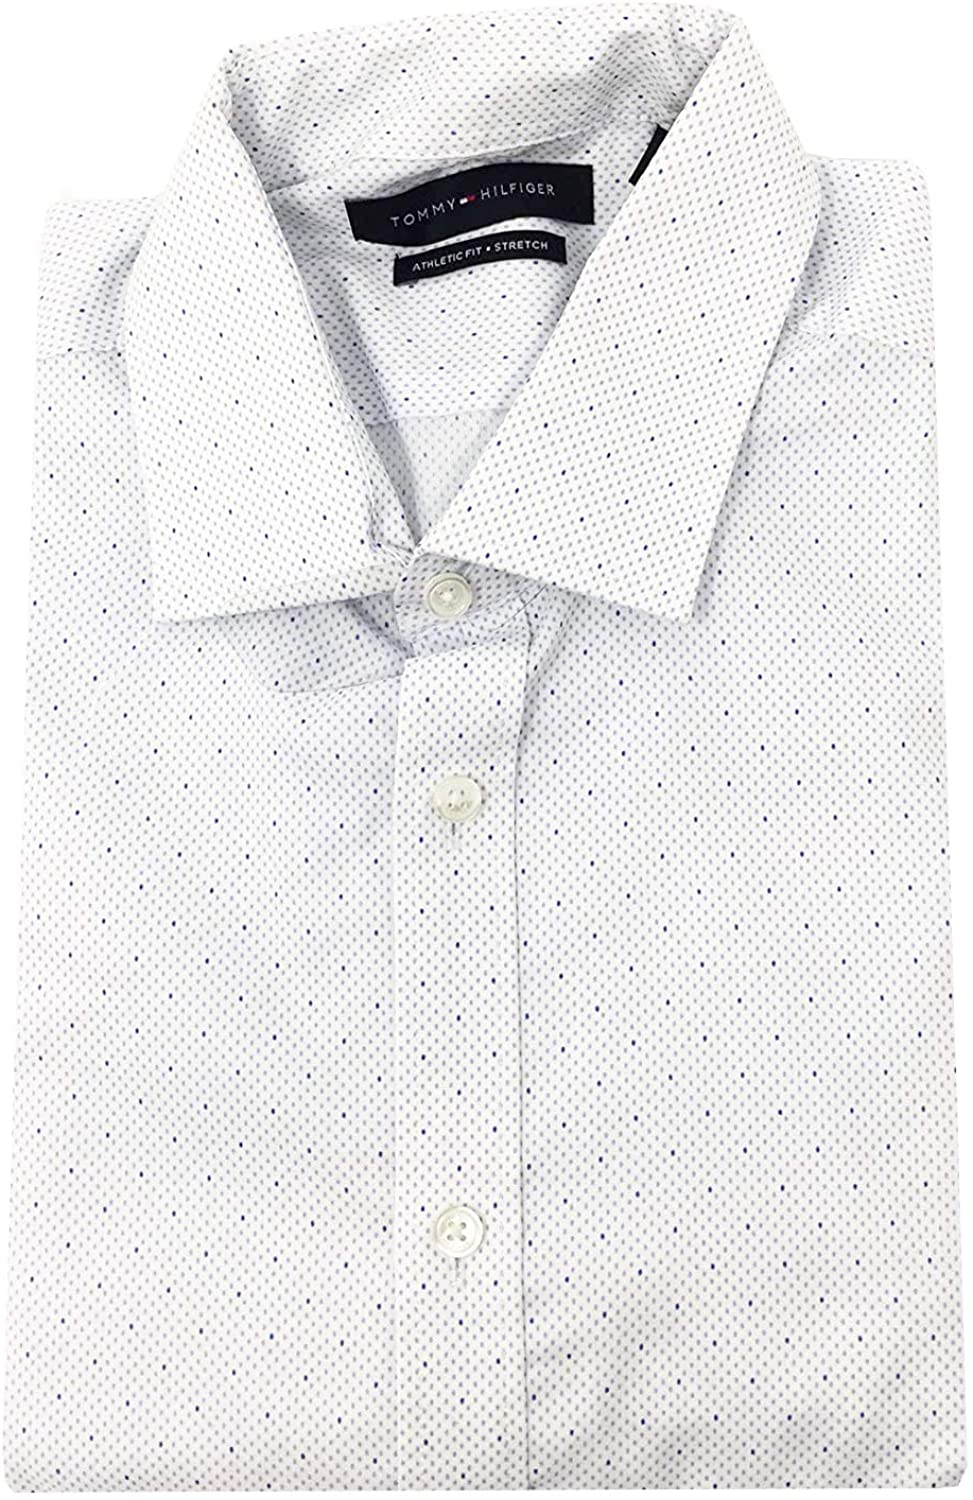 Tommy Hilfiger Mens Fitted Long Sleeve Flex Non-Iron White Dress Shirt 15.5 34/35